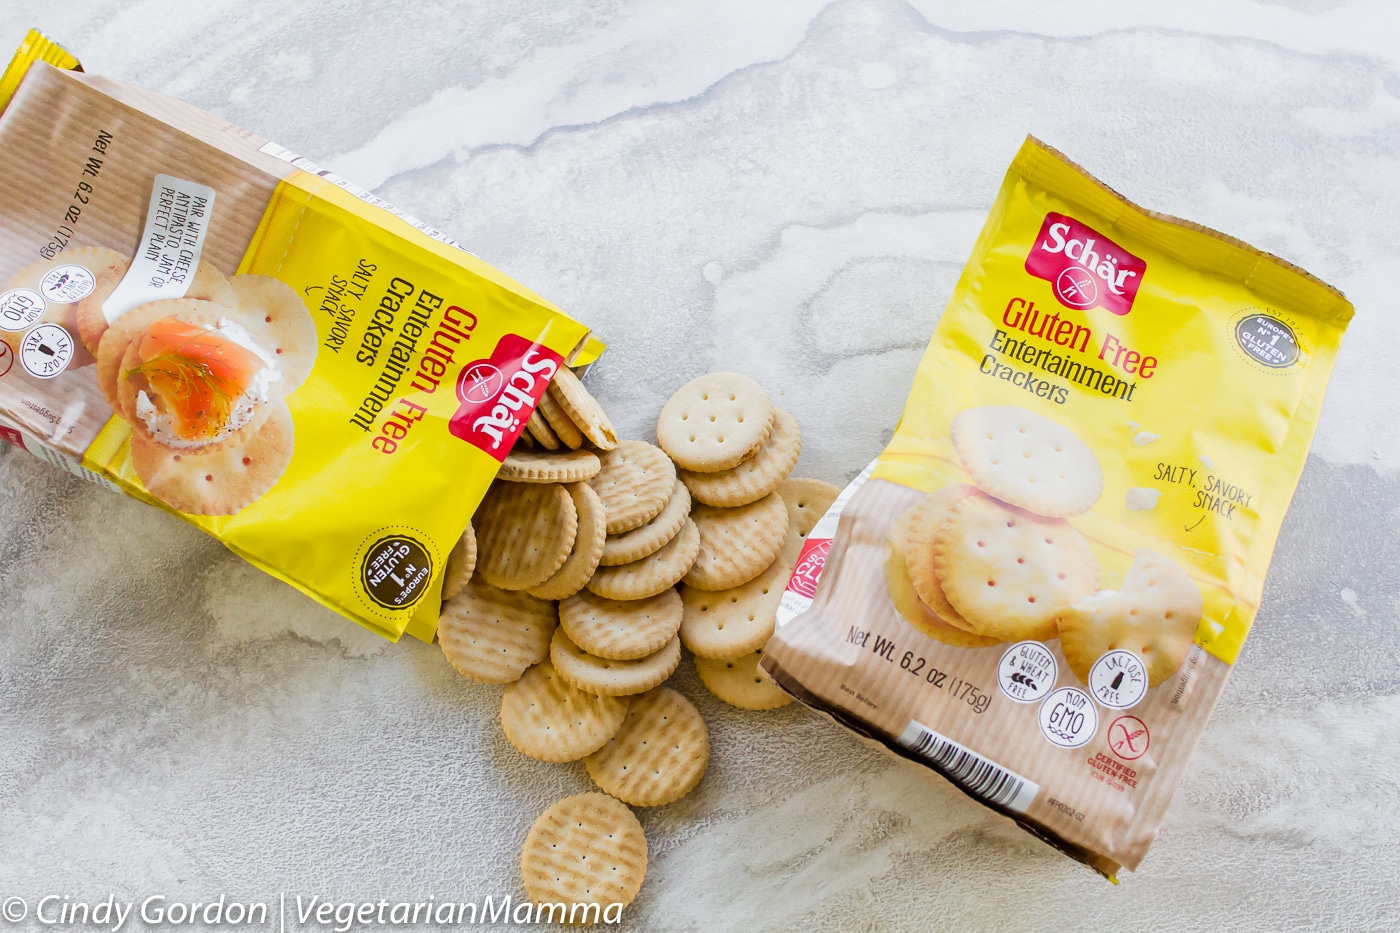 Homemade Gluten Free Tagalong Cookies uses Schar Entertainment Crackers